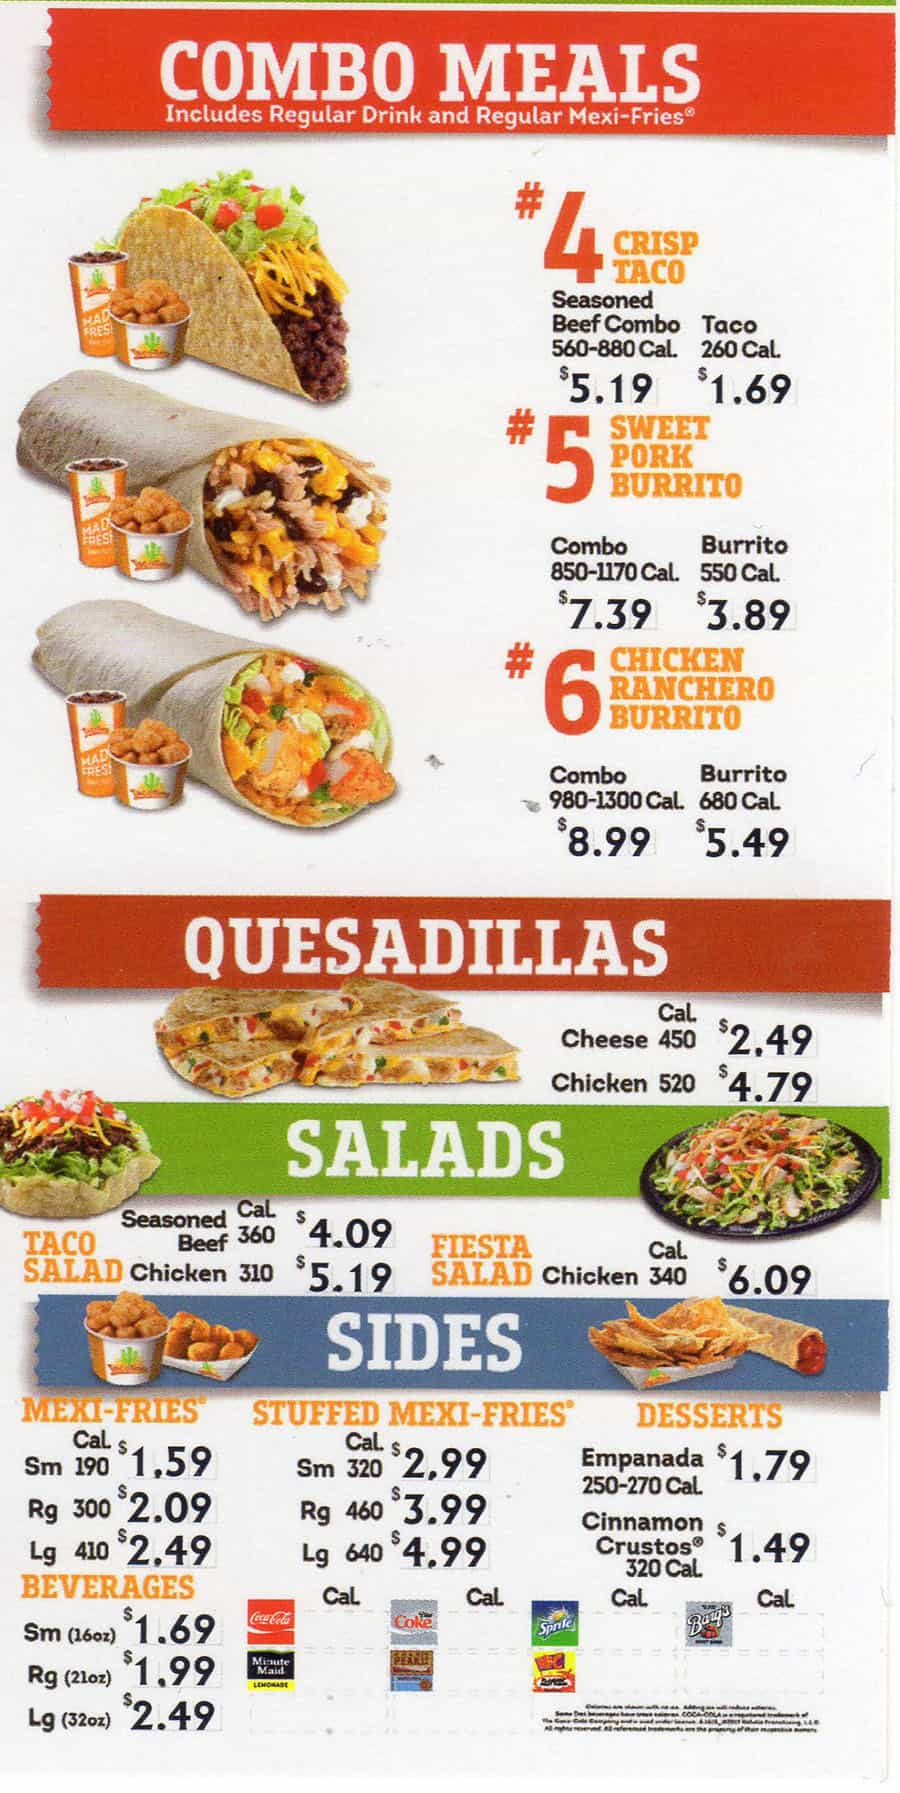 Taco Time menu - combo meals, quesadillas, salads, sides